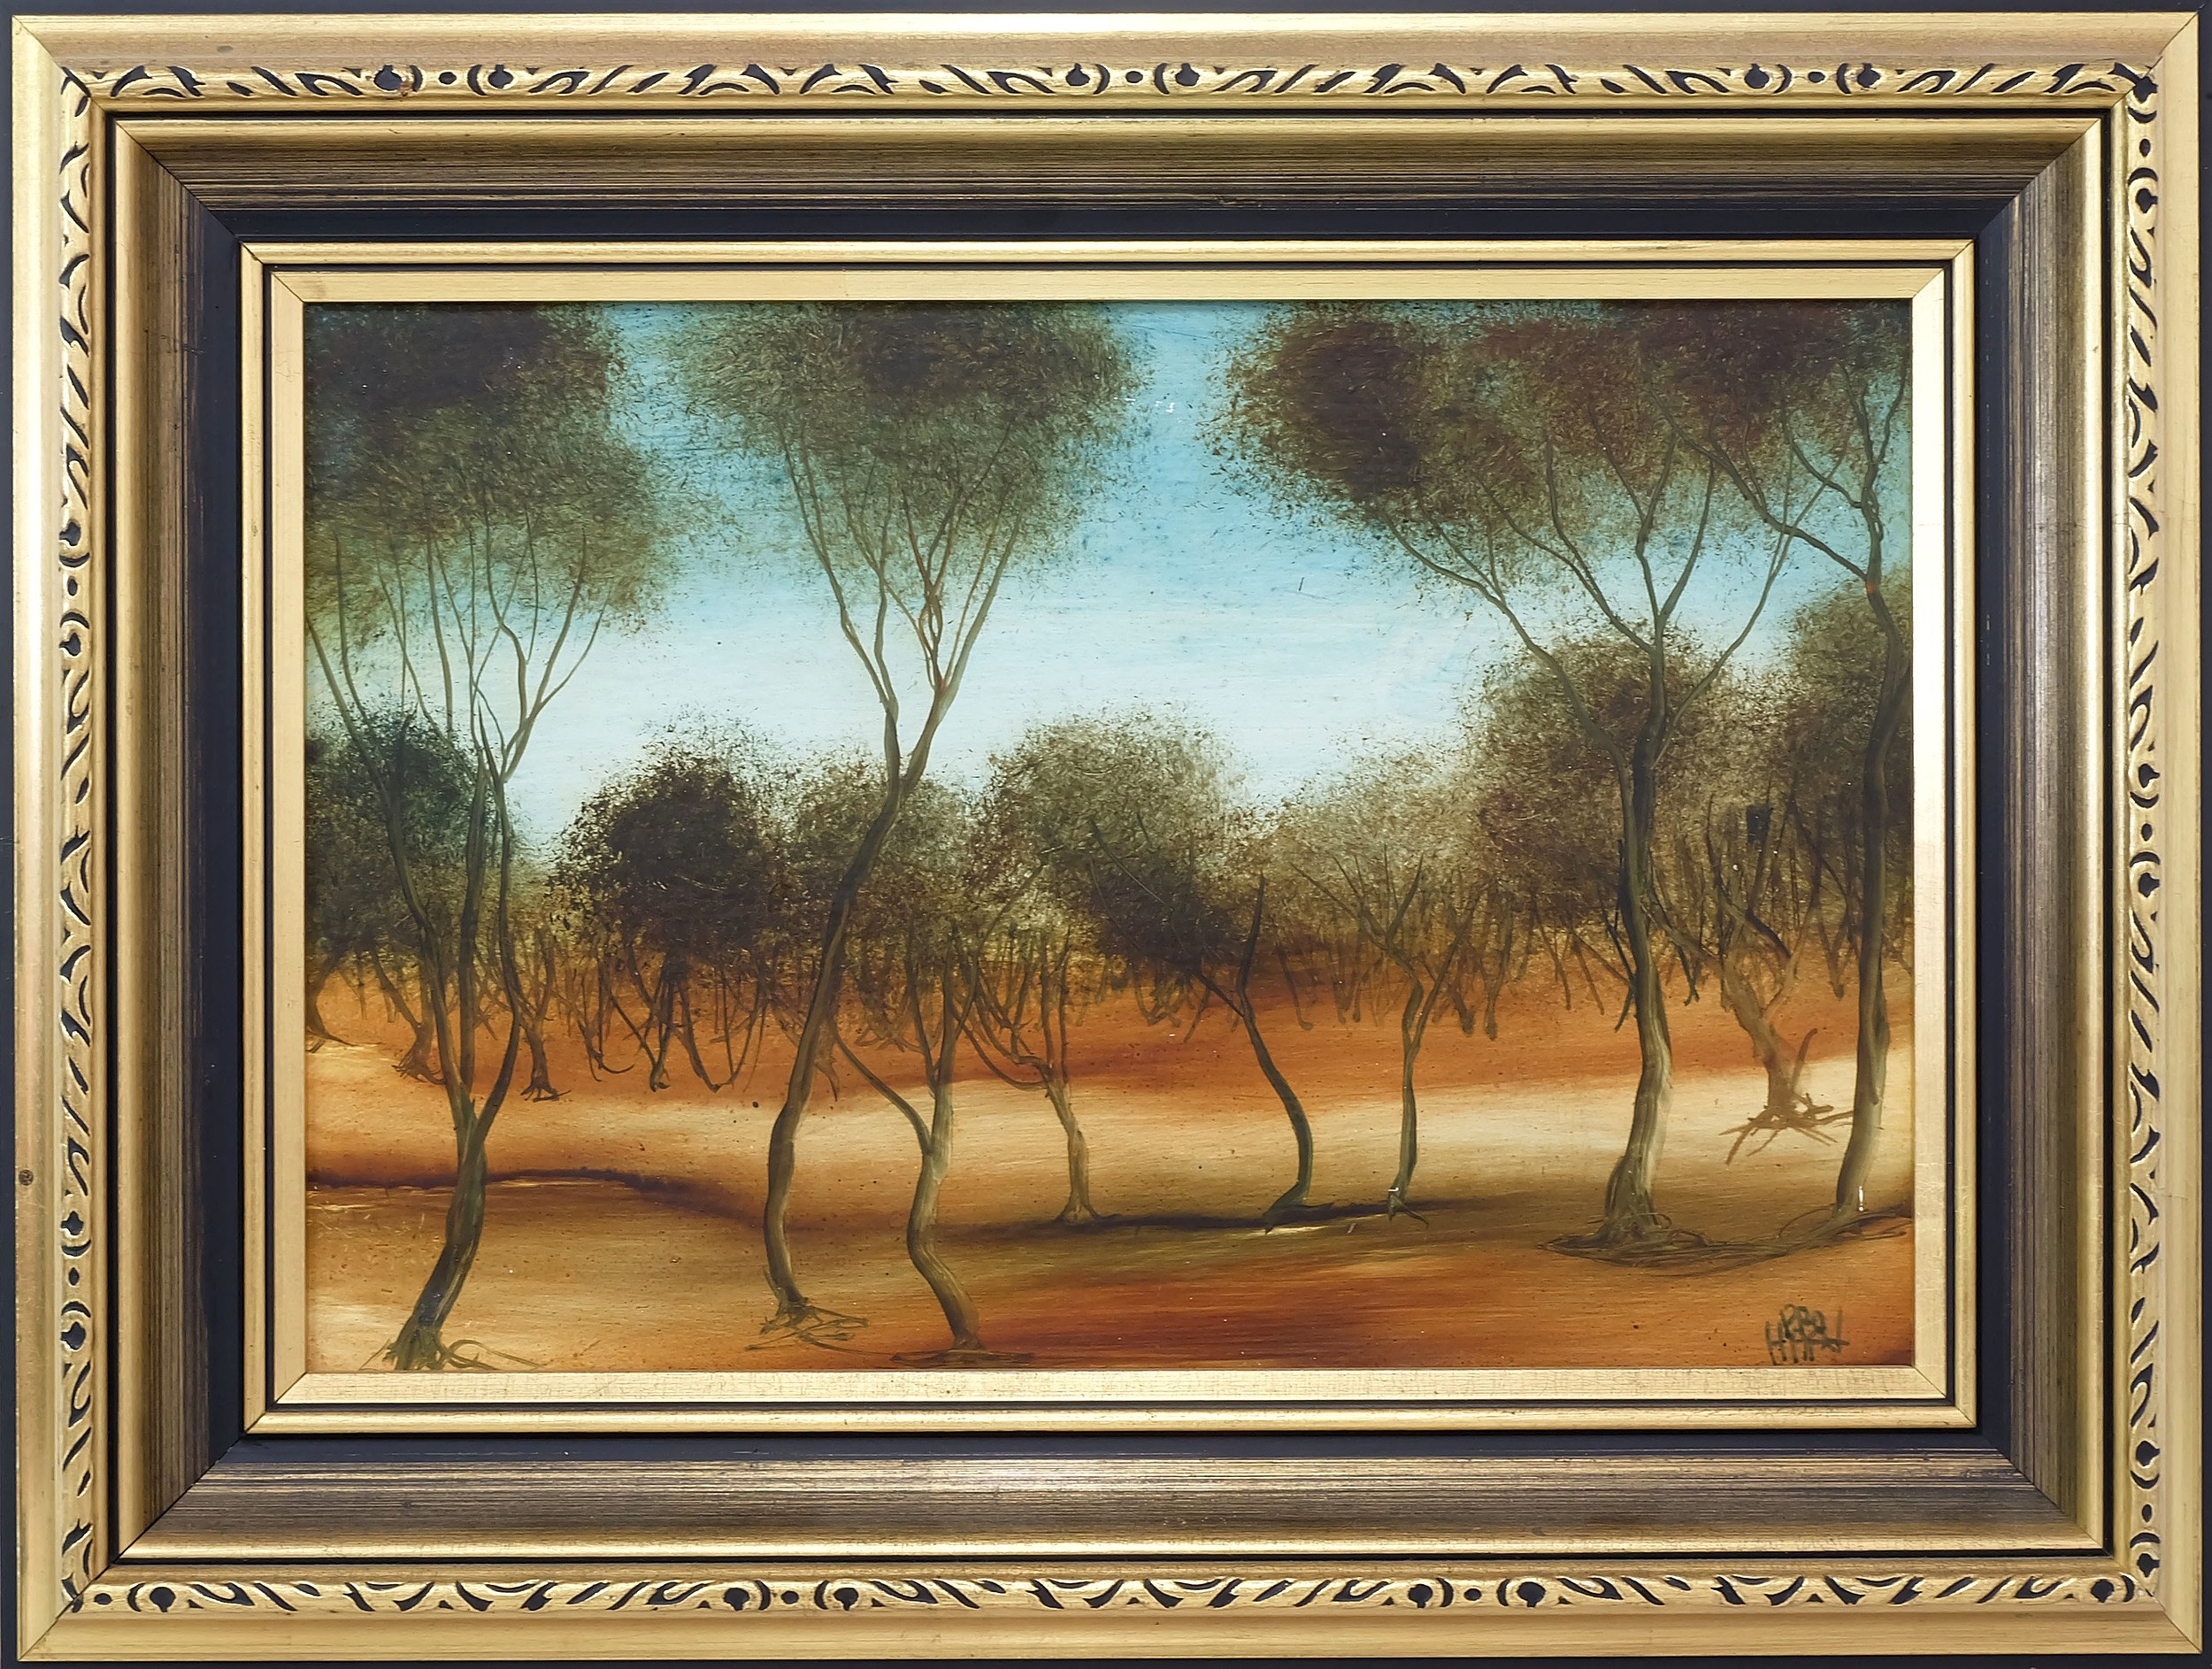 'Pro Hart (1928-2006) Landscape Oil on Board'